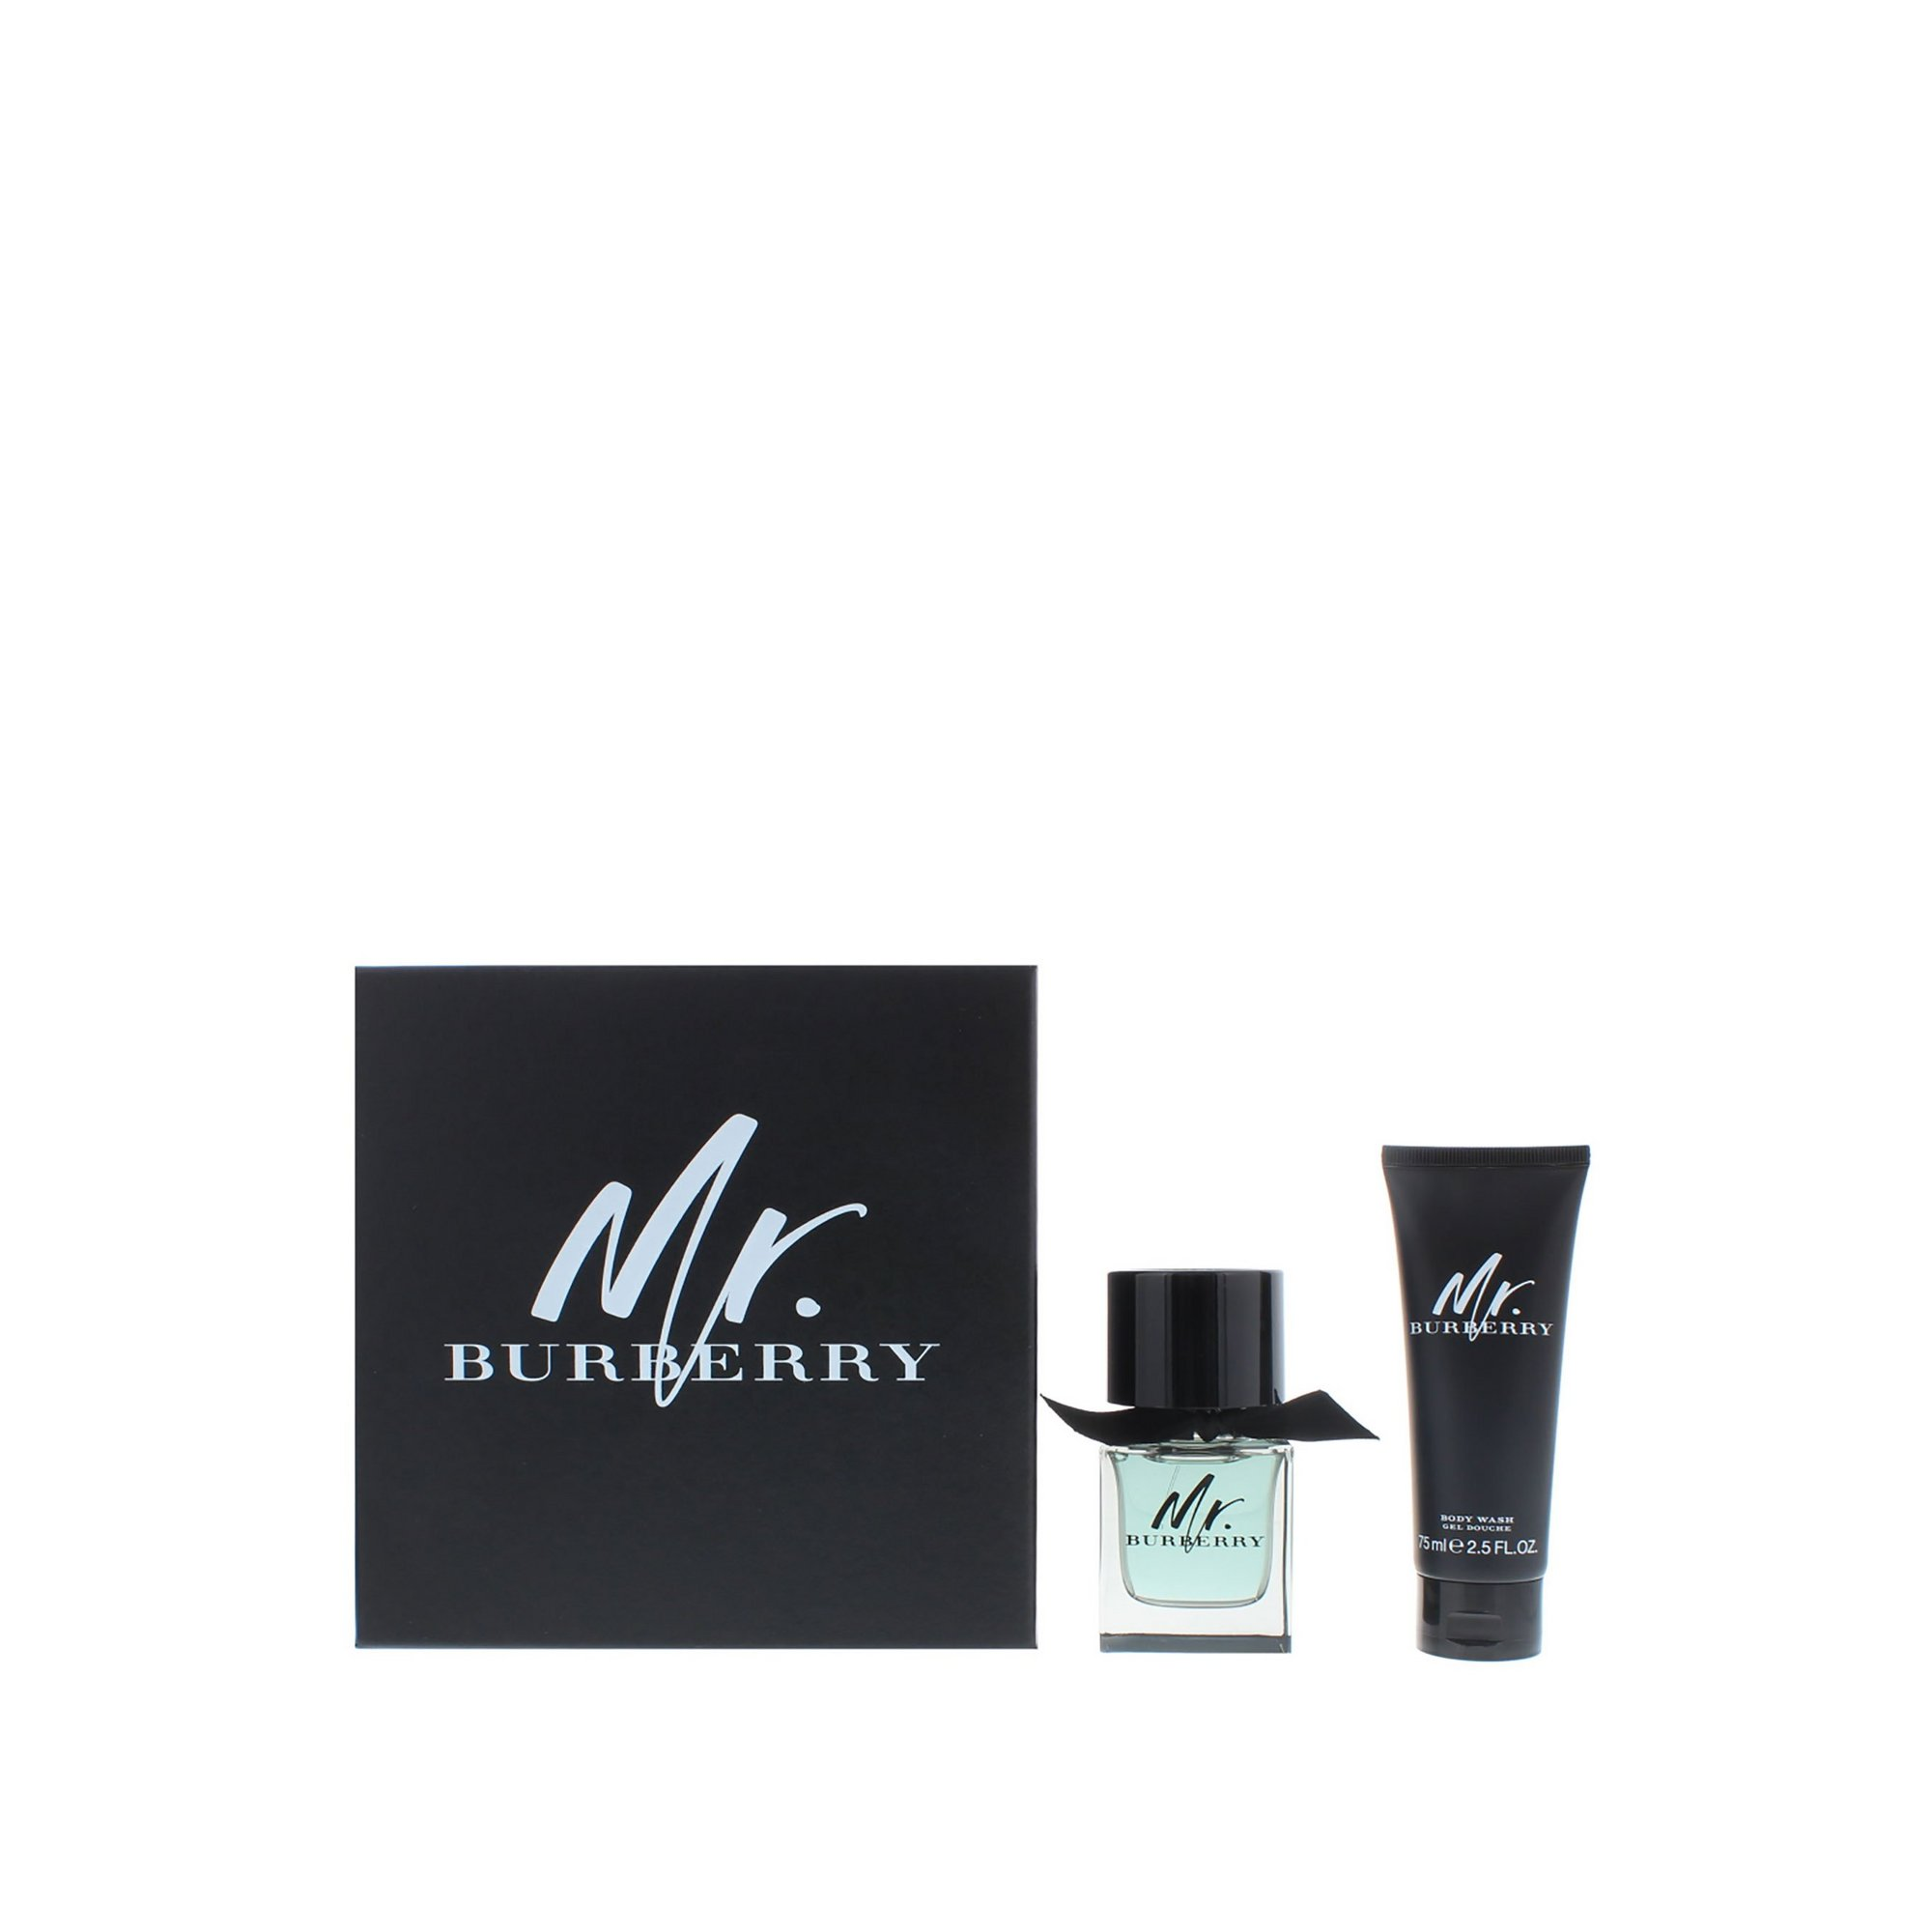 Image of Burberry Mr. Burberry 50ml EDT Gift Set